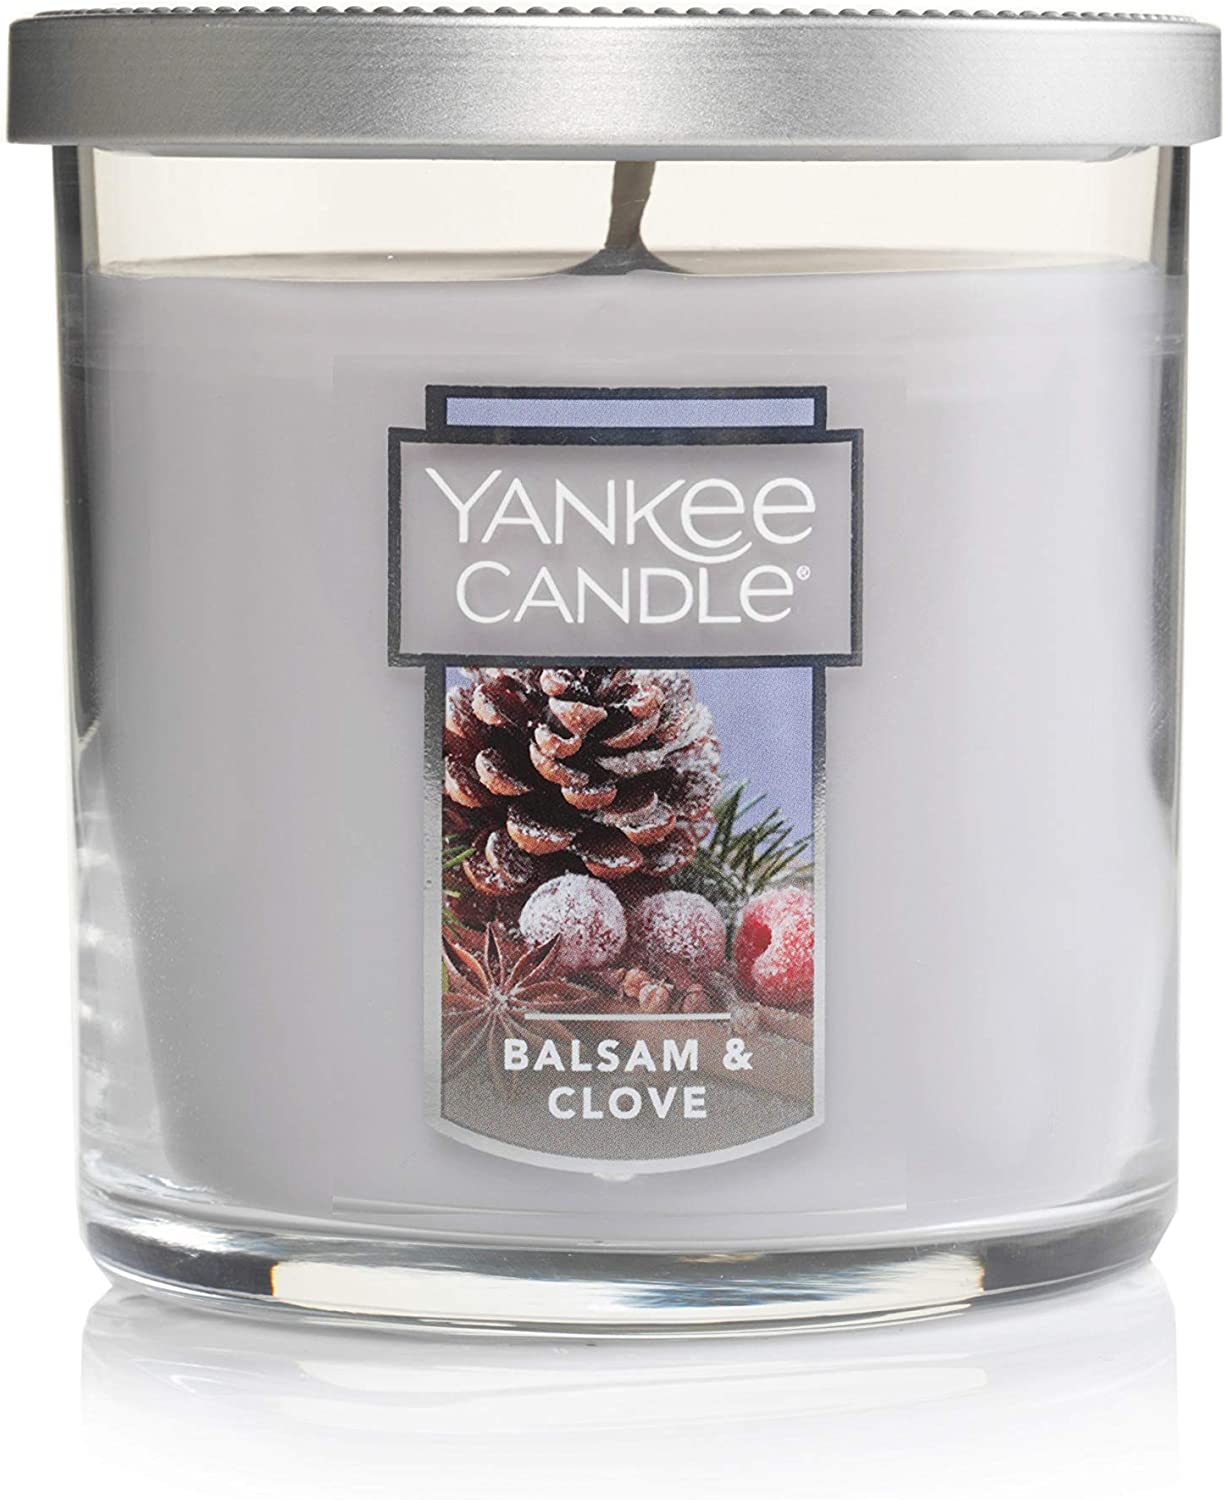 Yankee Candle Small Tumbler Jar Balsam/Clove Scented Premium Paraffin Grade Candle Wax with up to 55 Hour Burn Time